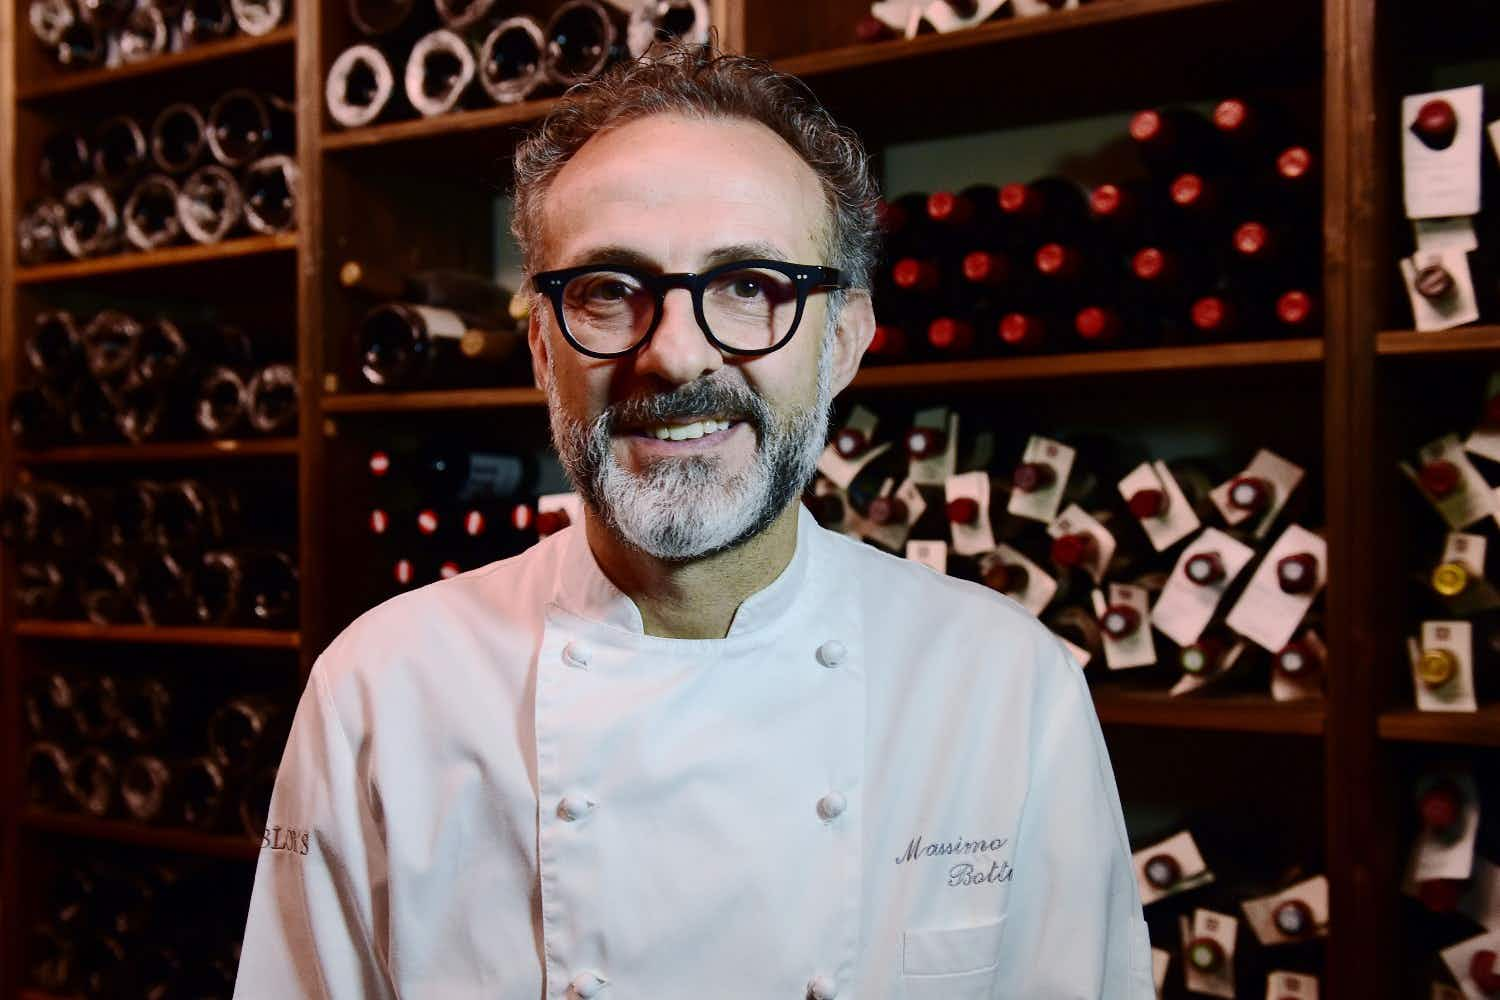 The famous chef behind the world's best restaurant is opening a hotel restaurant in Dubai